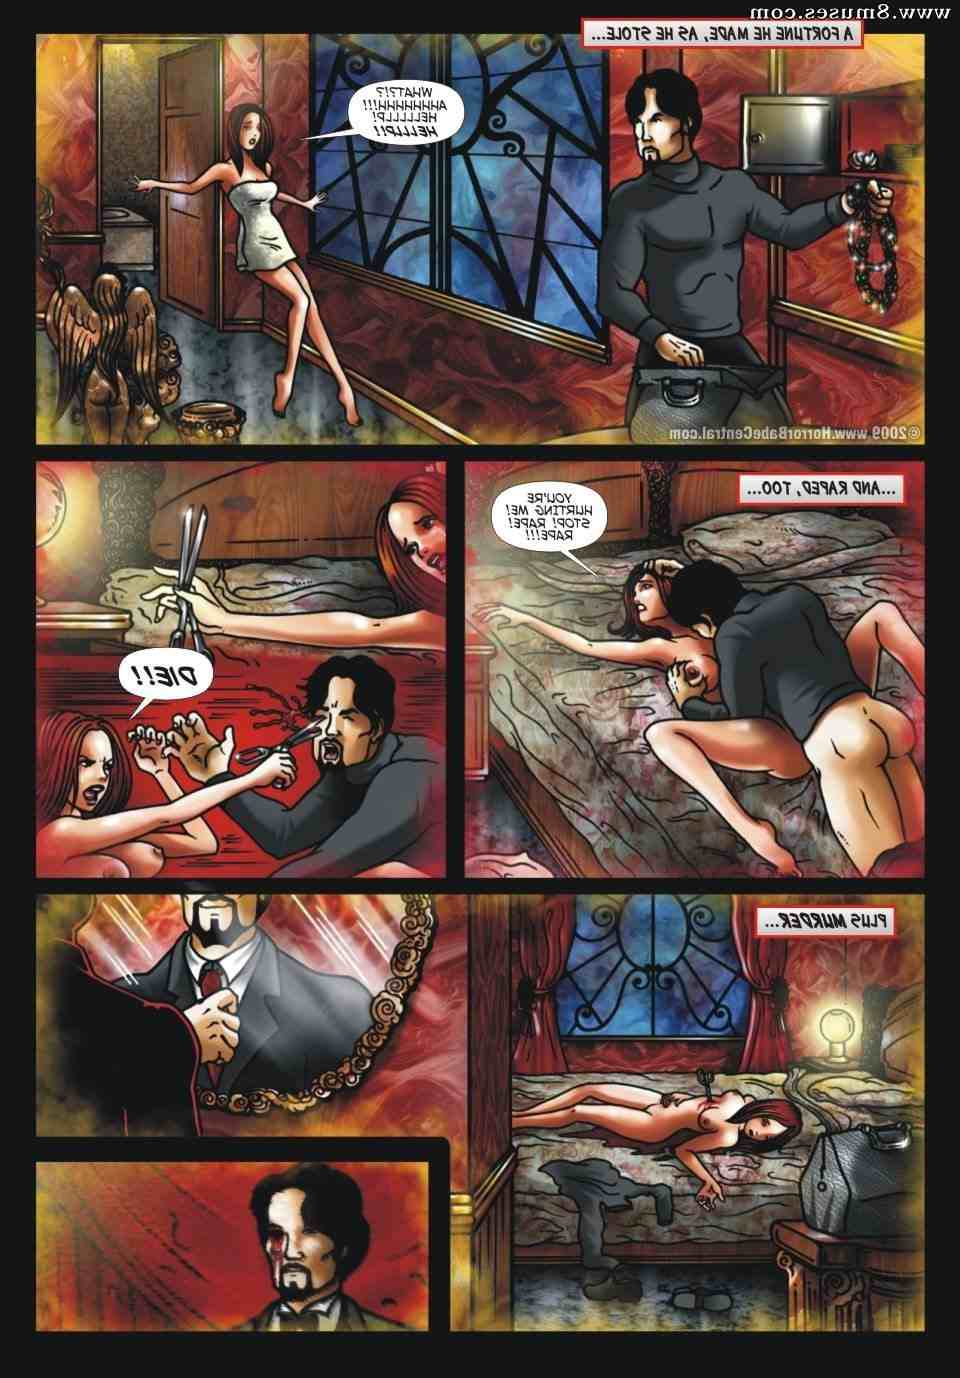 Central-Comics/Horror-Babe-Central/Fable-of-Fright Fable_of_Fright__8muses_-_Sex_and_Porn_Comics_114.jpg